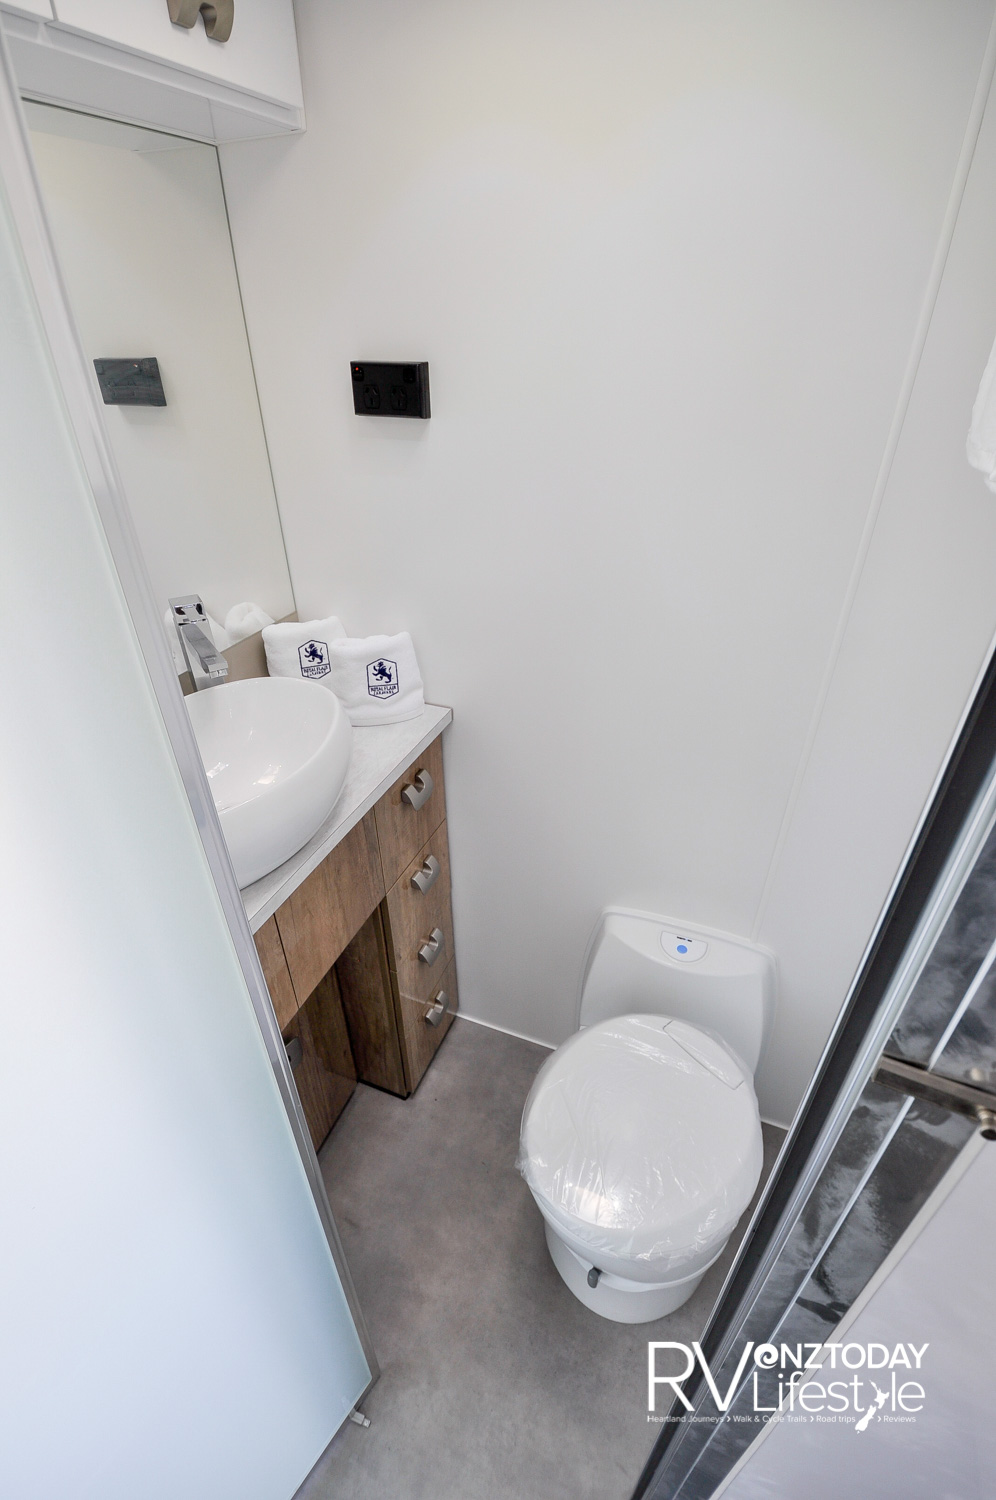 Toilet en suite with vanity unit, plenty of storage under the sink and above, pedestal electric flush cassette toilet